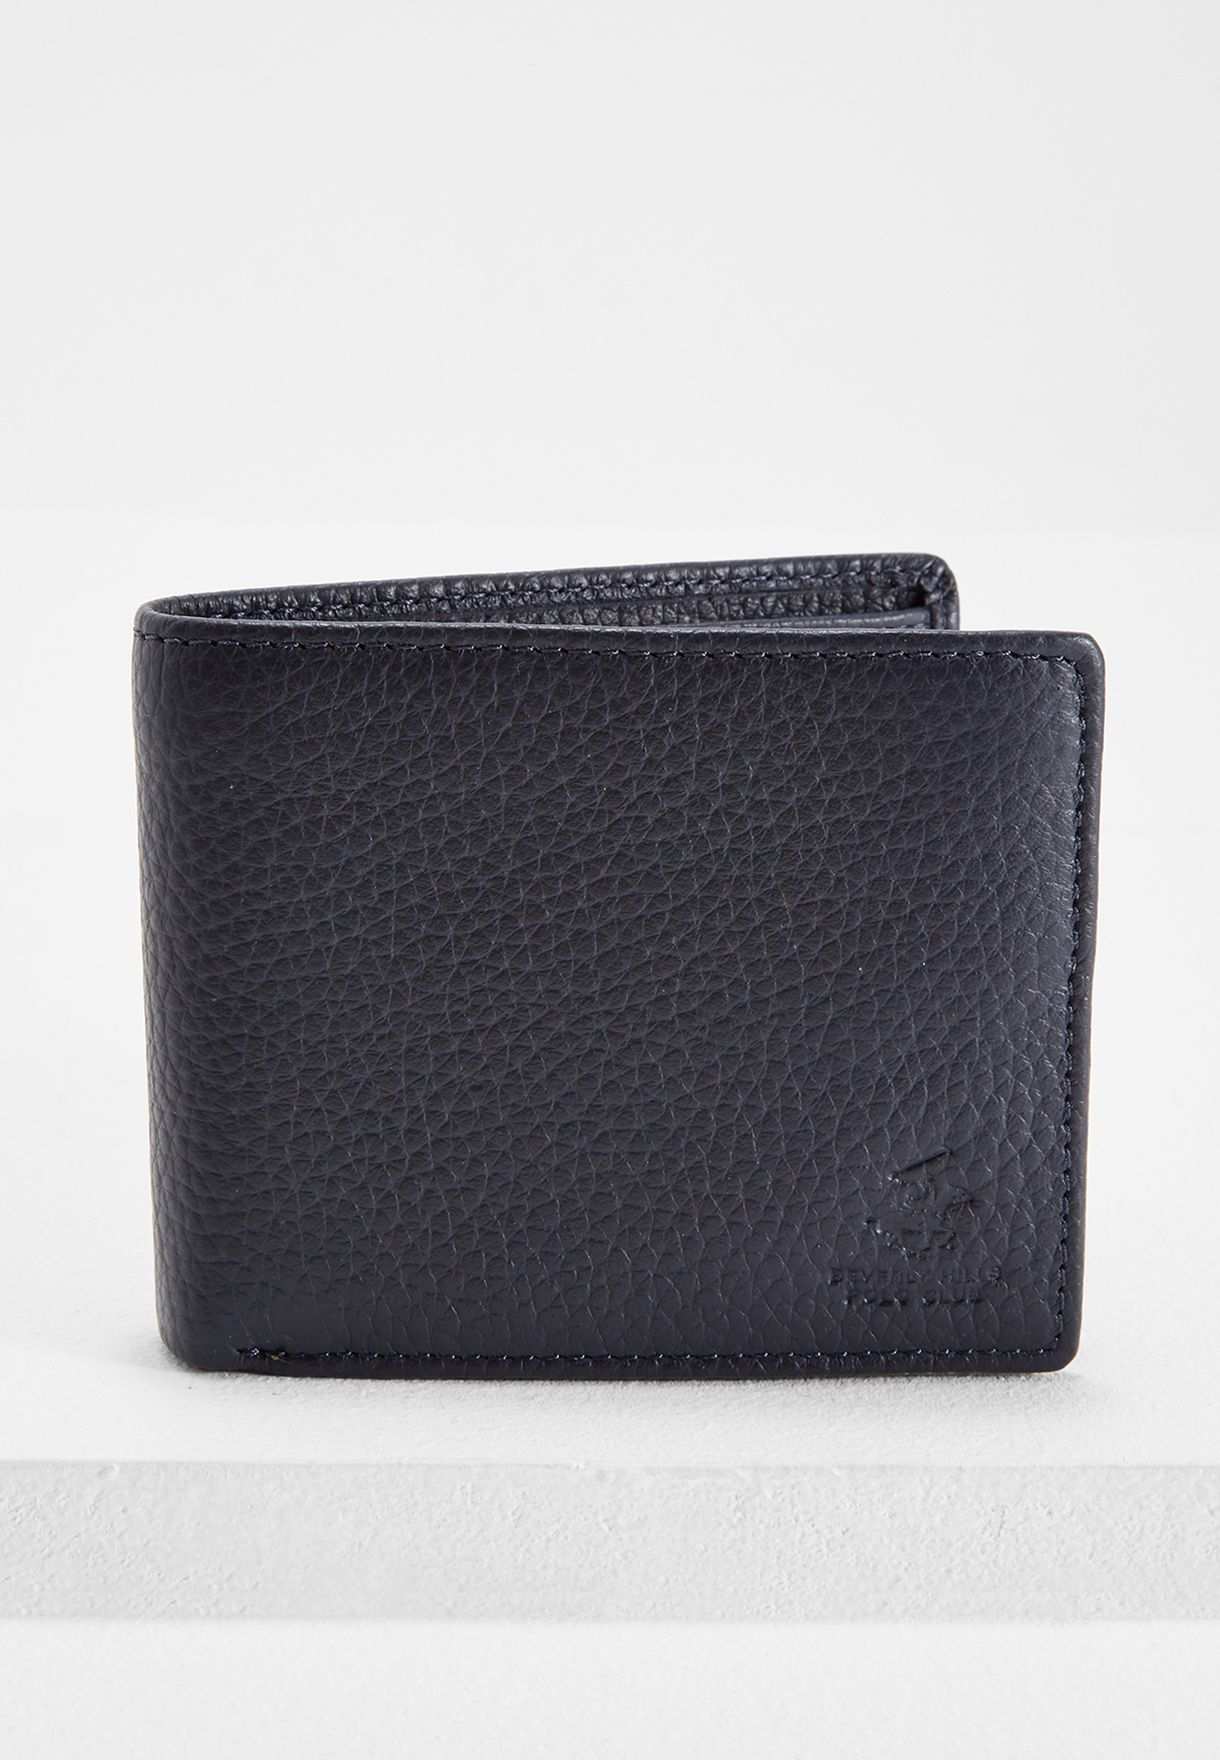 12a5391d4f Shop Beverly Hills Polo Club black Leather Wallet BP W9123 for Men ...